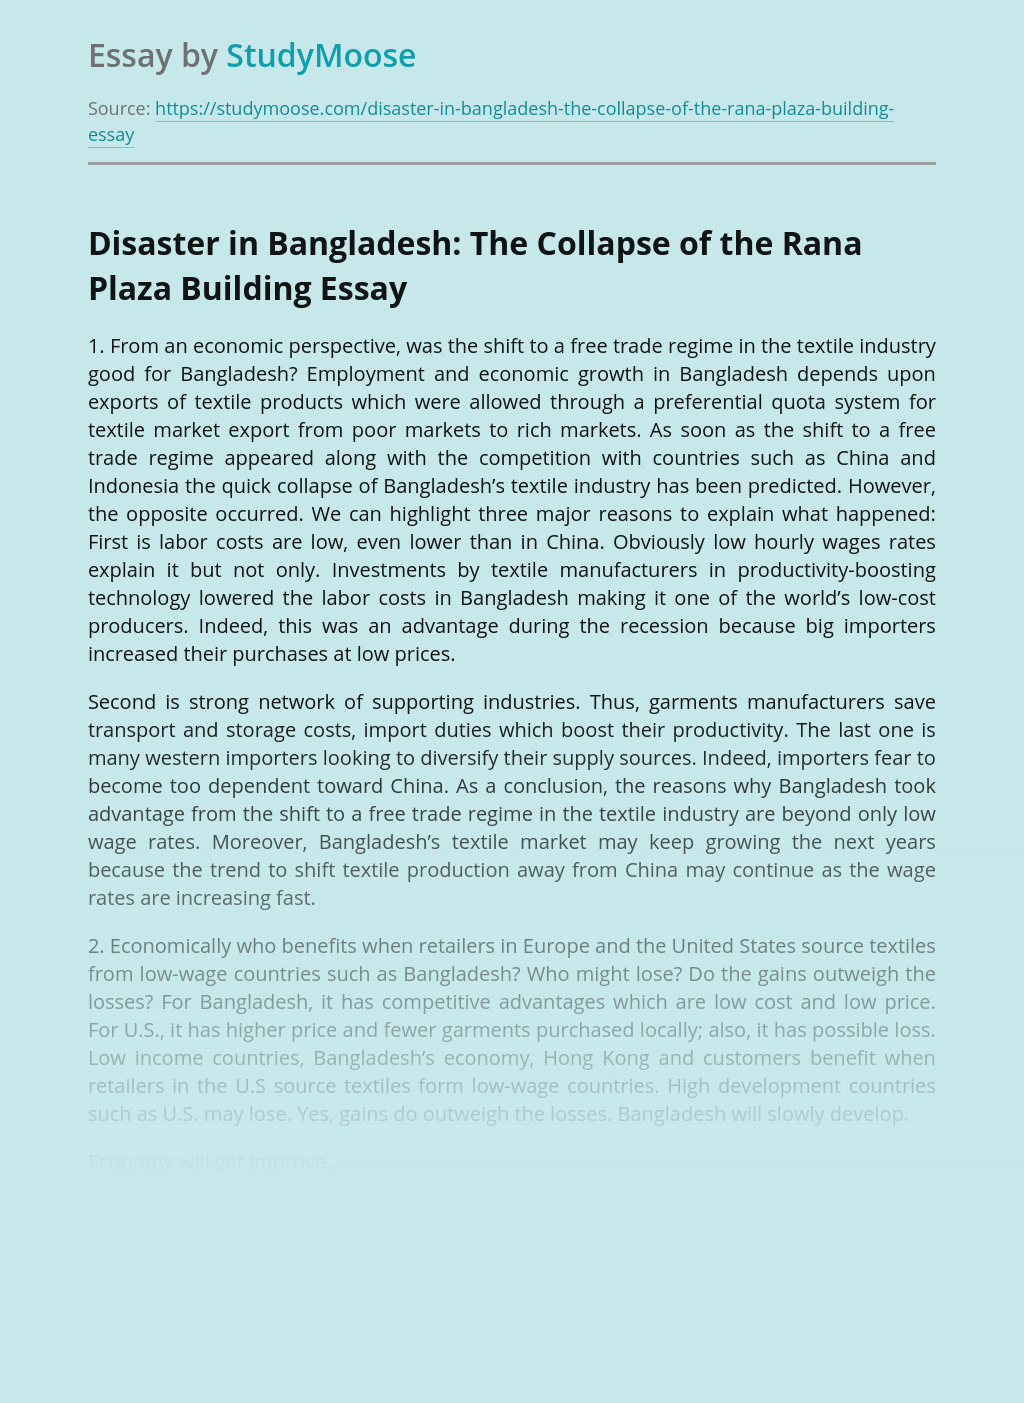 Disaster in Bangladesh: The Collapse of the Rana Plaza Building